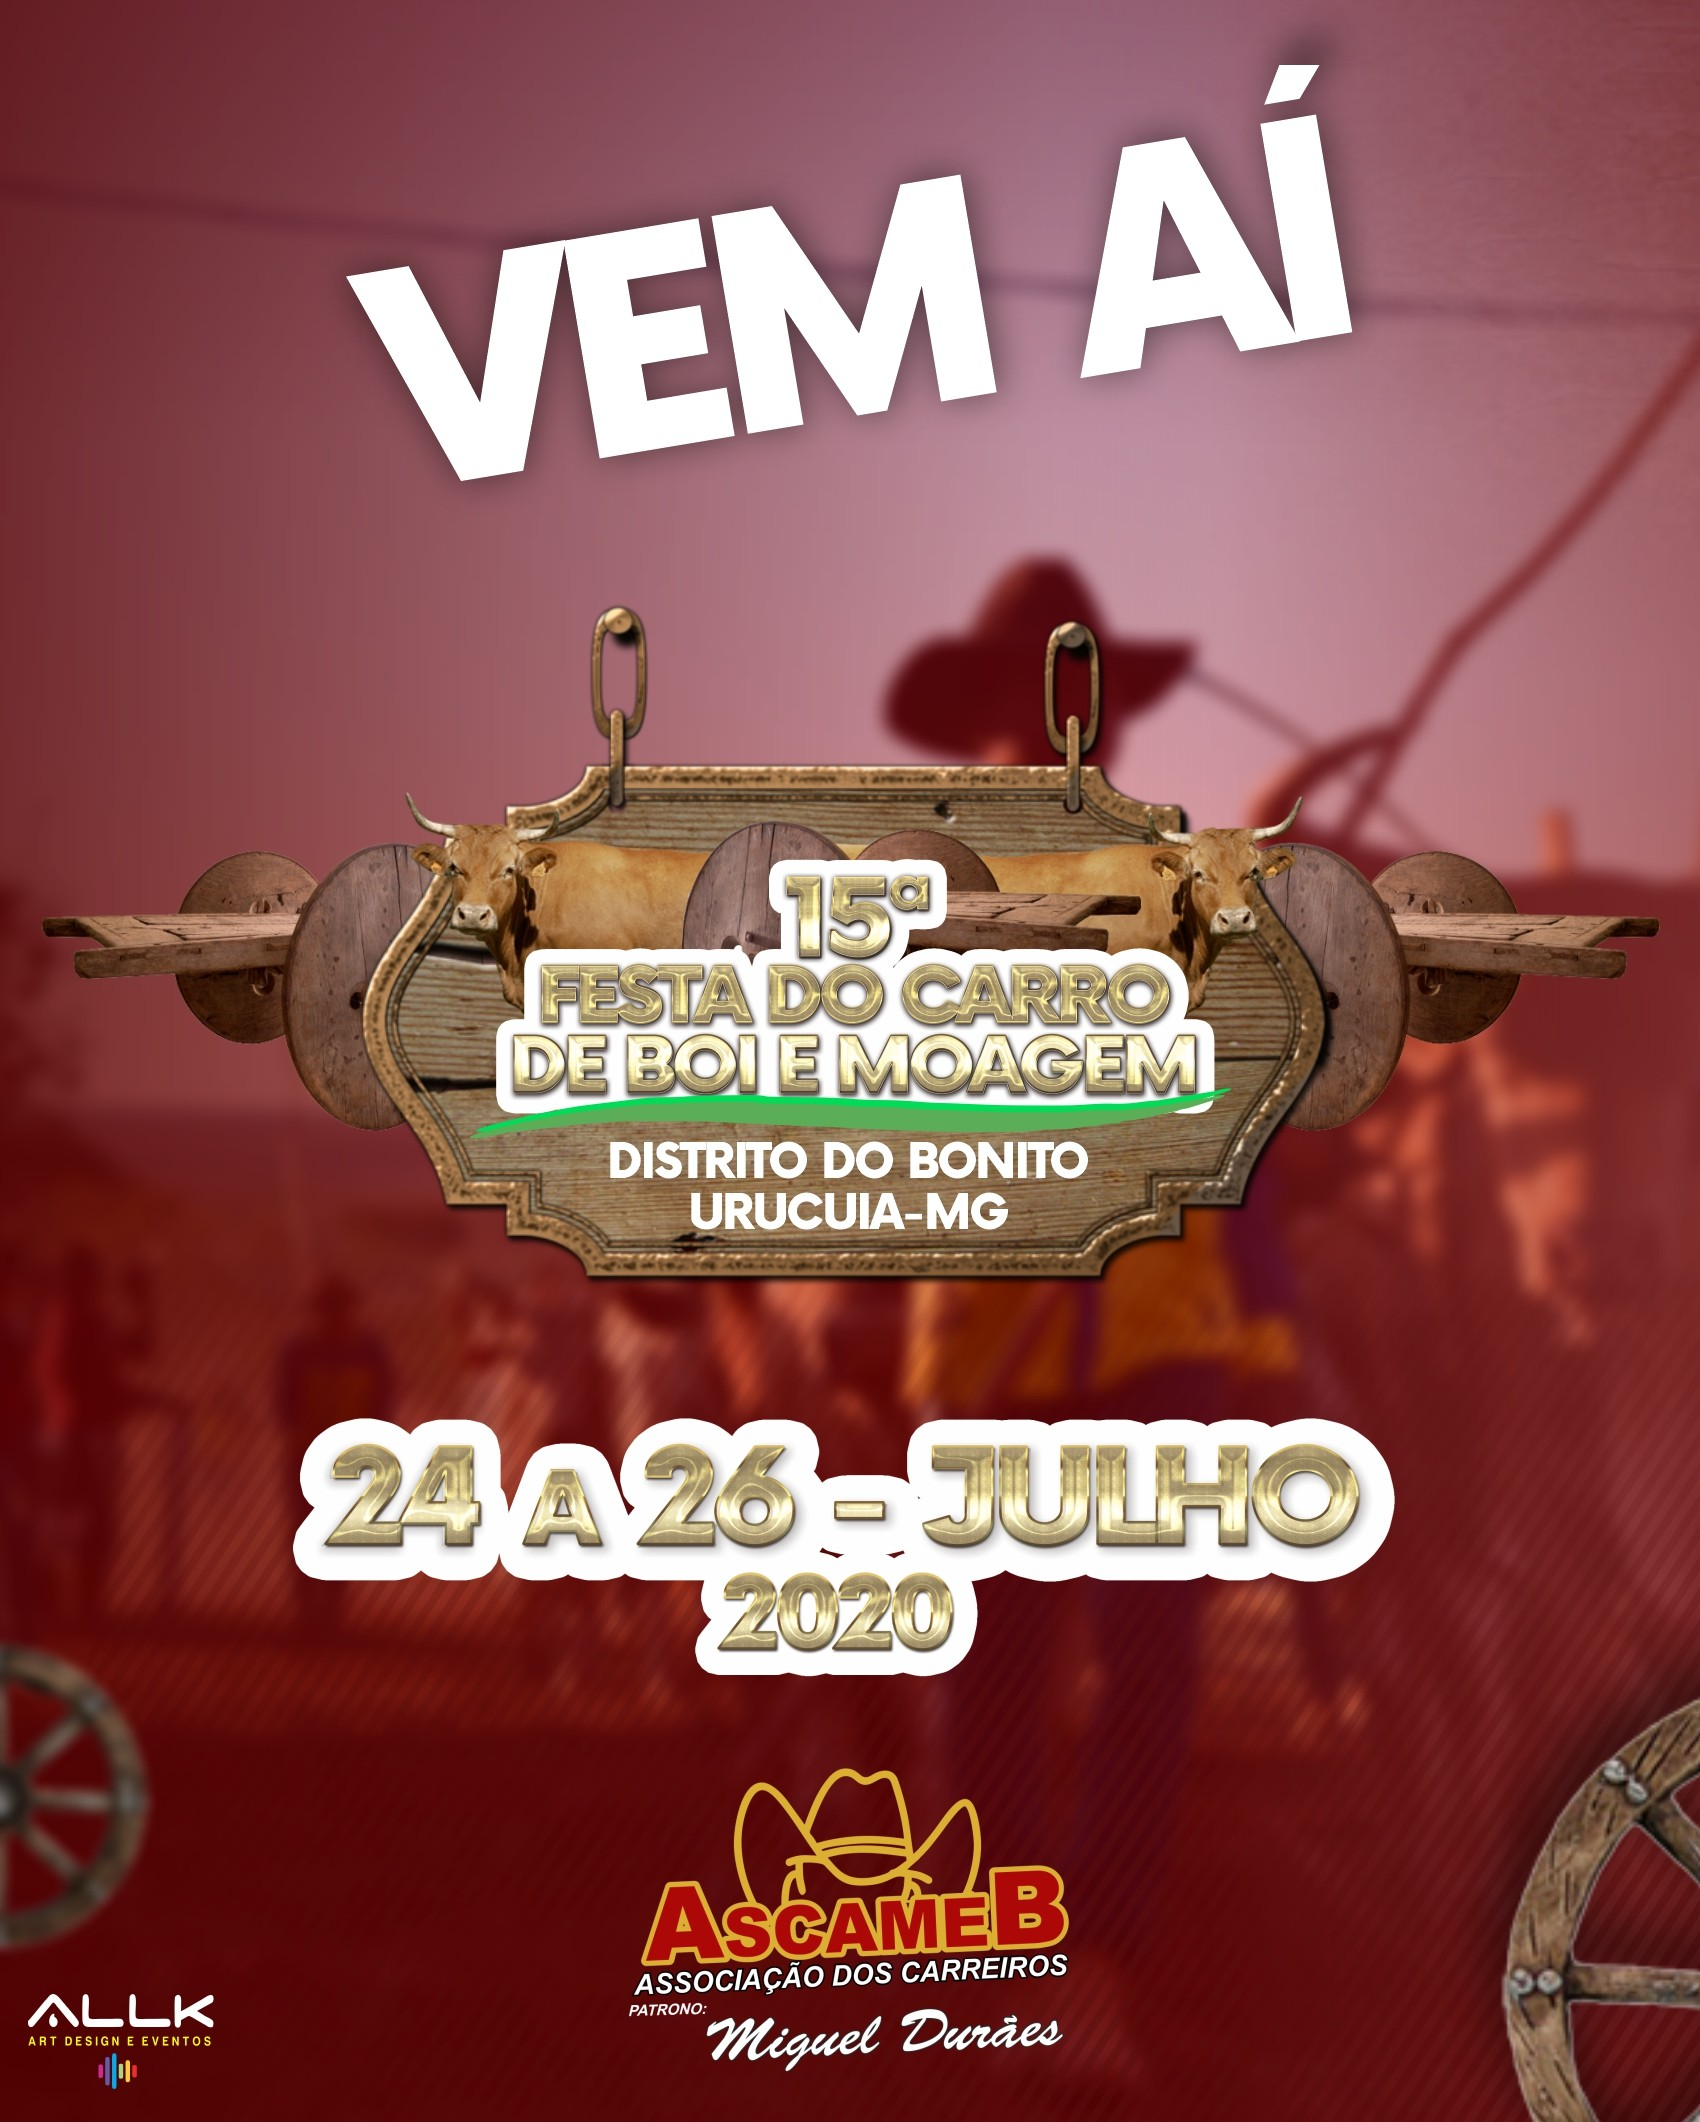 15ª FESTA DO CARRO DE BOI E MOAGEM